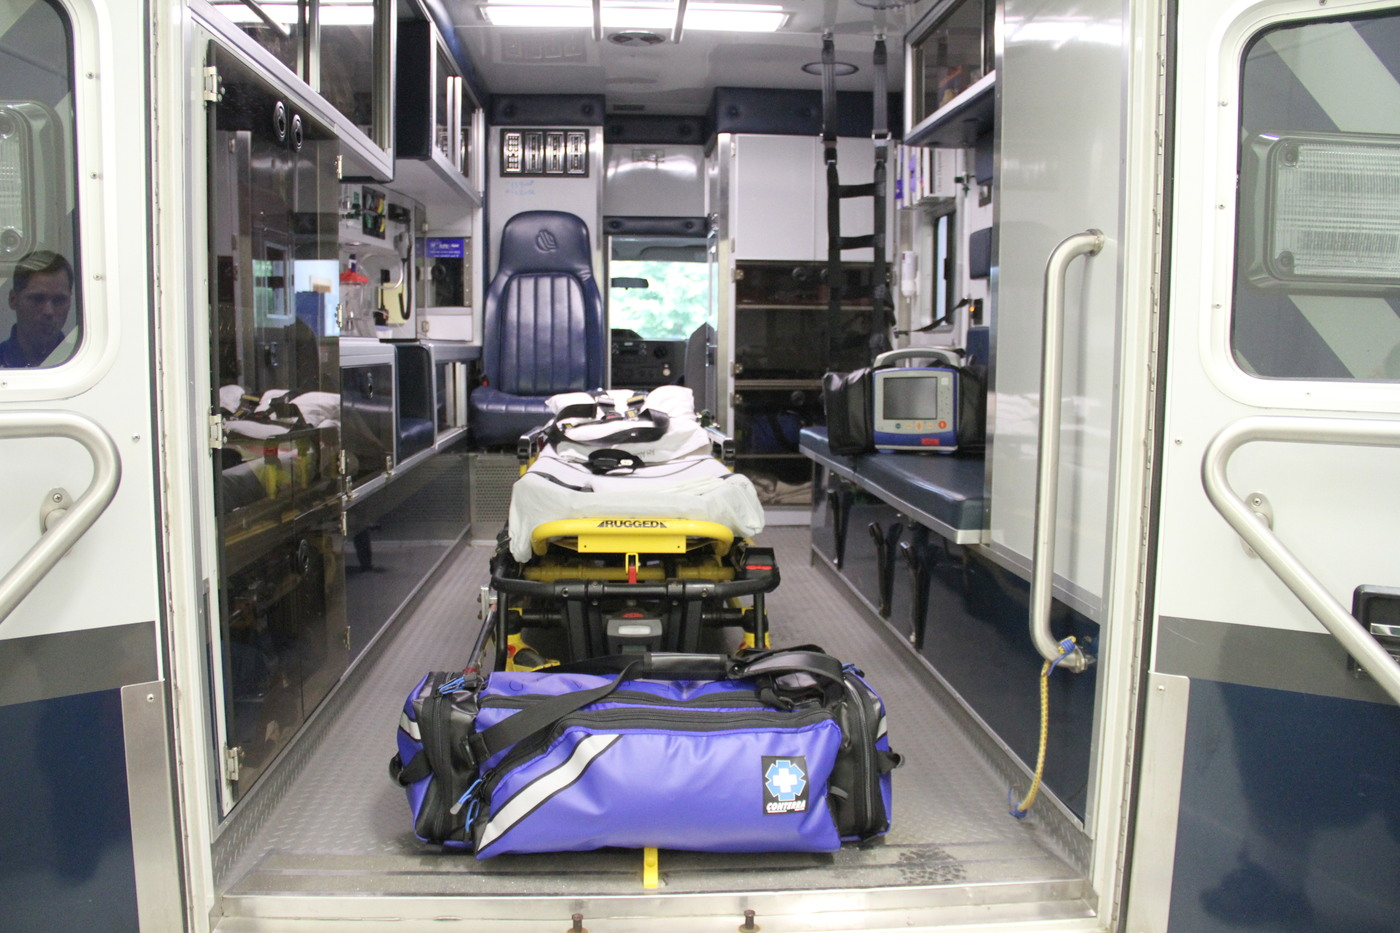 North Country at Work: Saving lives as an EMT in Lake Placid